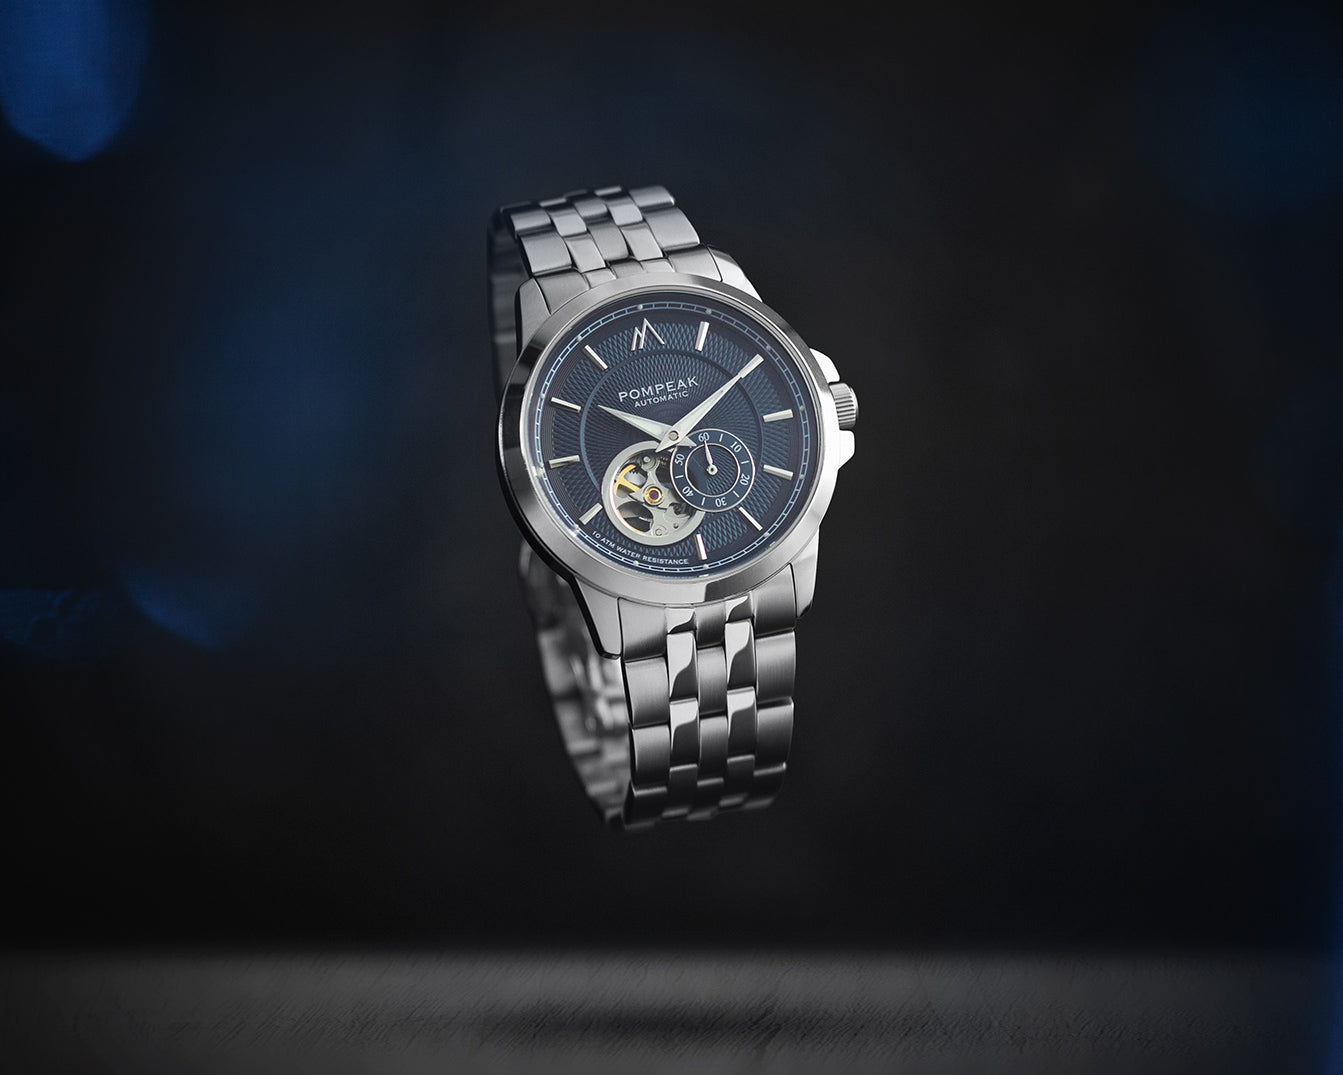 Pompeak Gentlemens Navy Automatic watch, creative product image